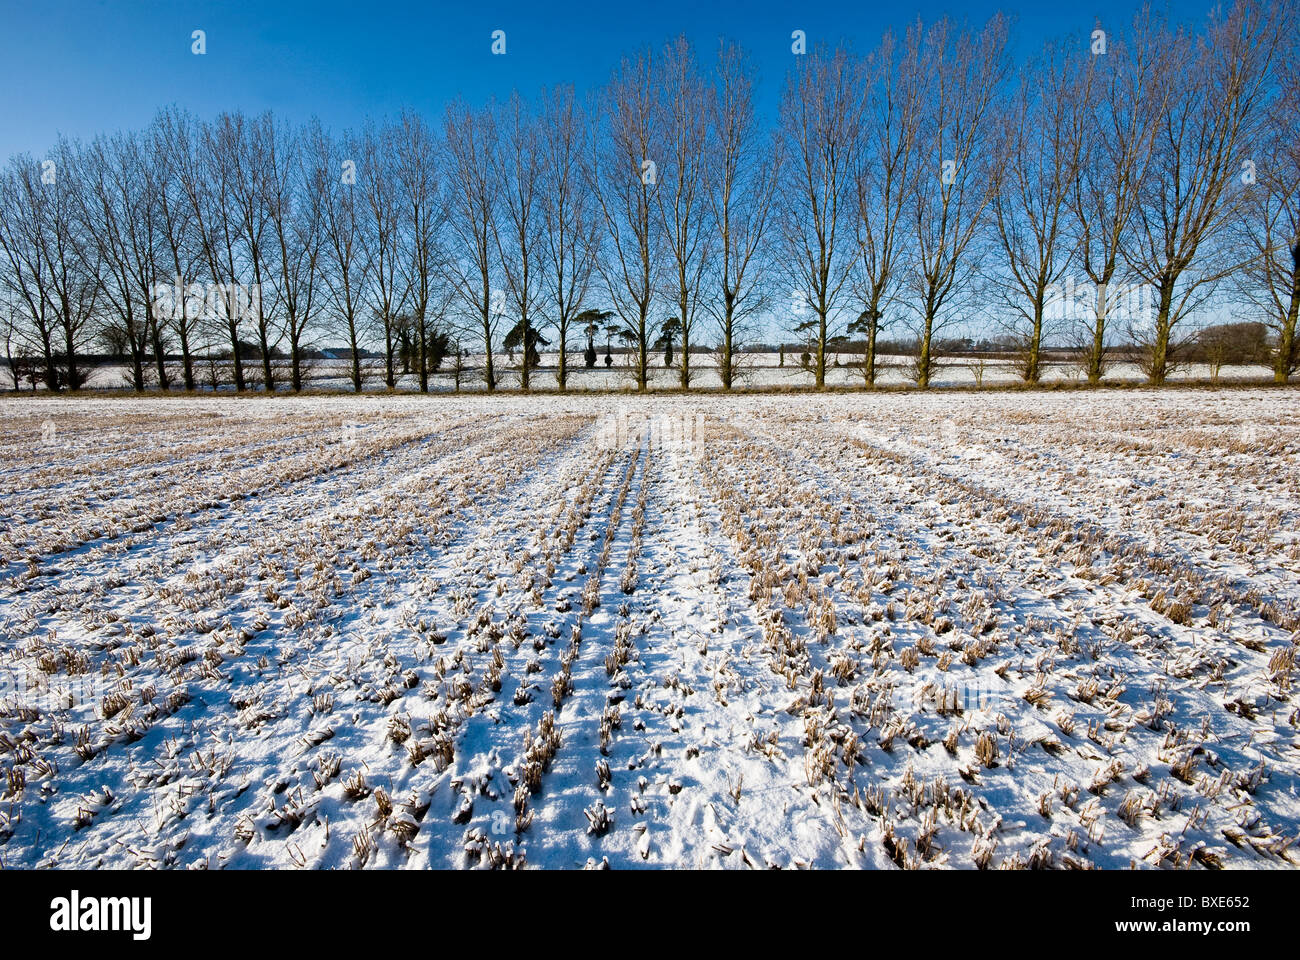 Line of leafless poplar trees silhouetted against a blue sky.  Snow covered wheat stubble field in the foreground. Stock Photo